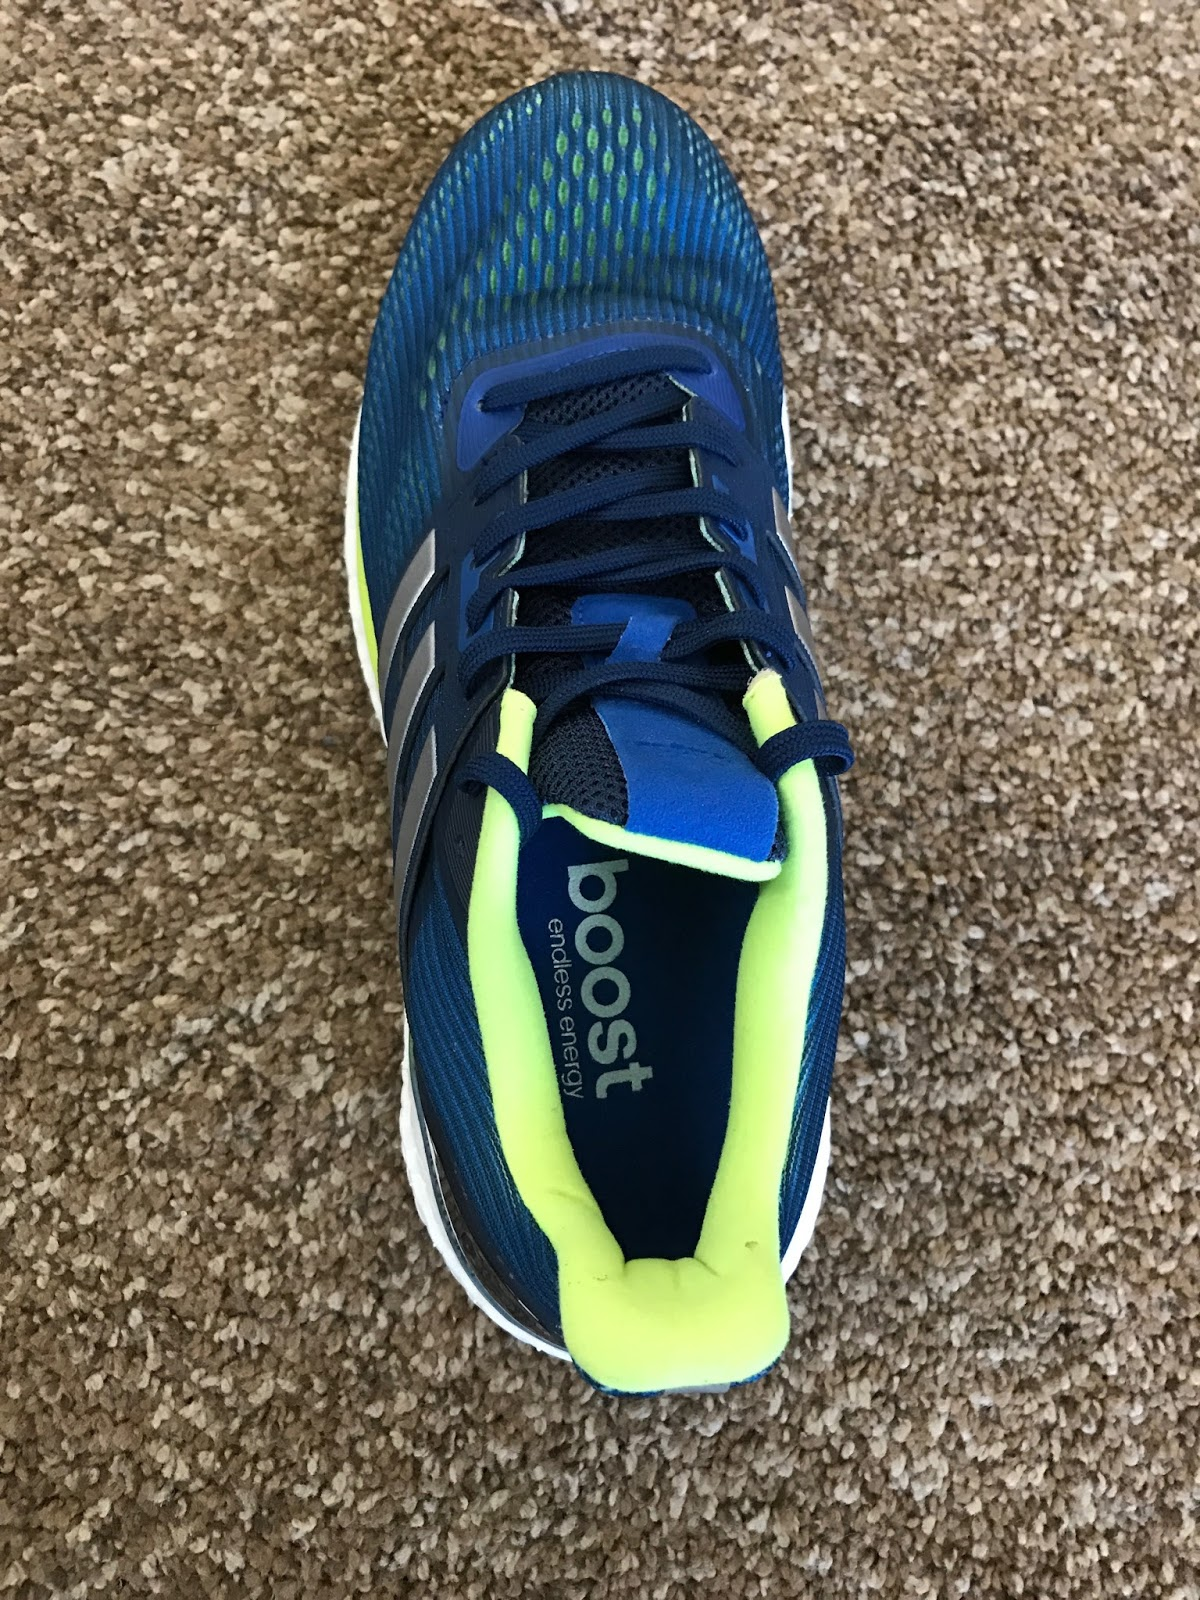 ae78ef9691067 Road Trail Run  adidas Supernova Glide 9 Review  Rebounding